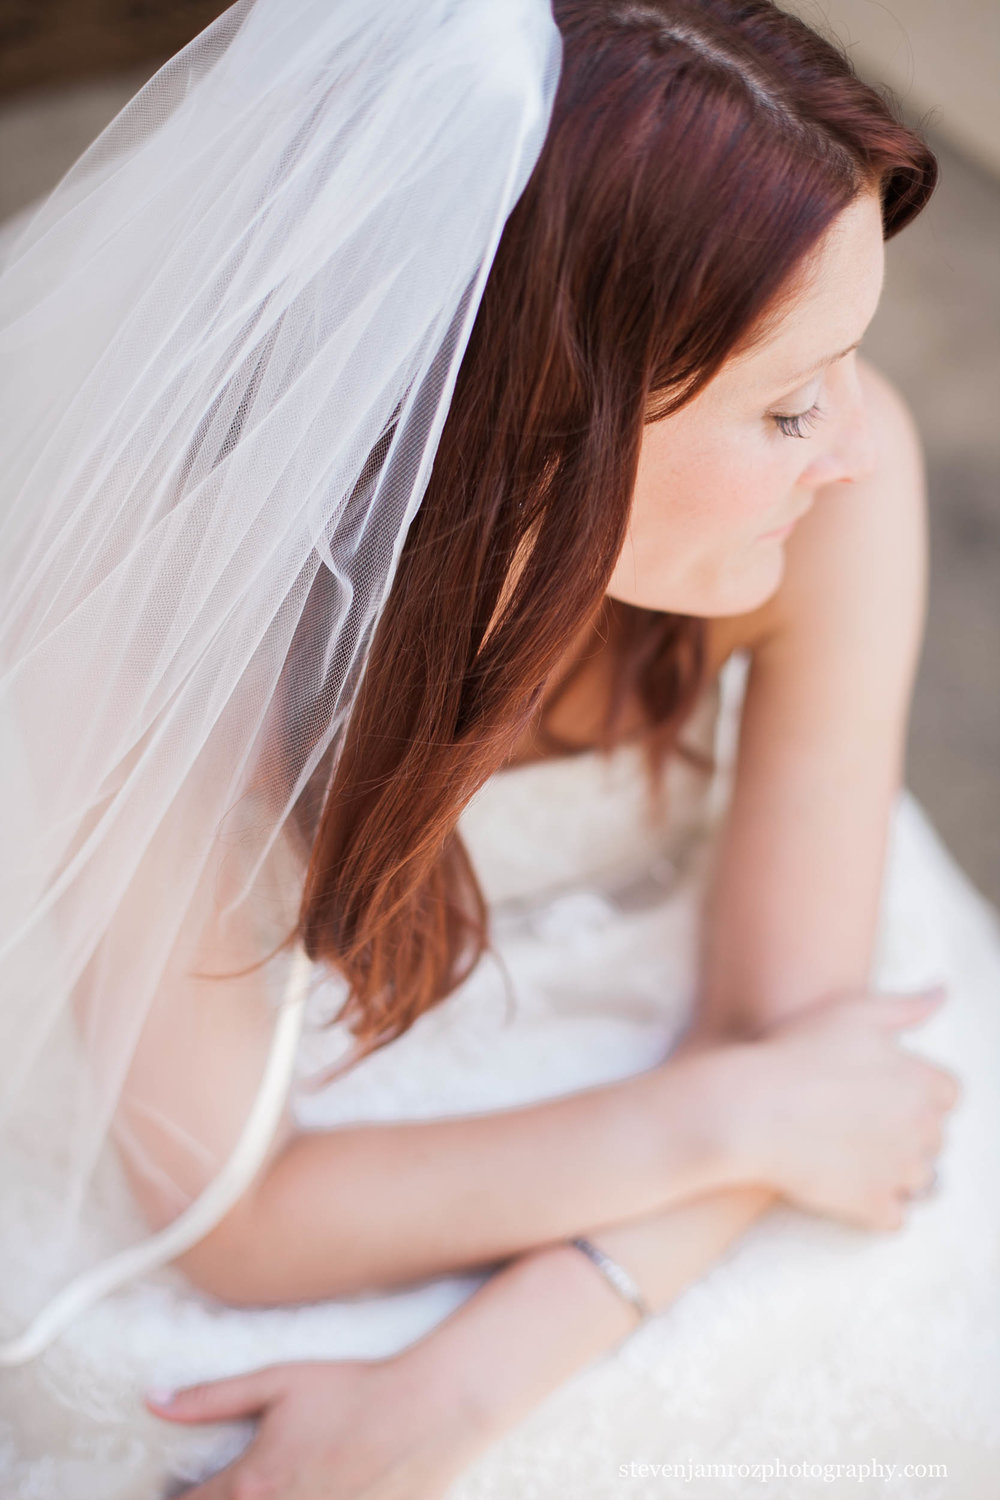 red-head-bride-lace-veil-wedding-photographer-raleigh-0094.jpg